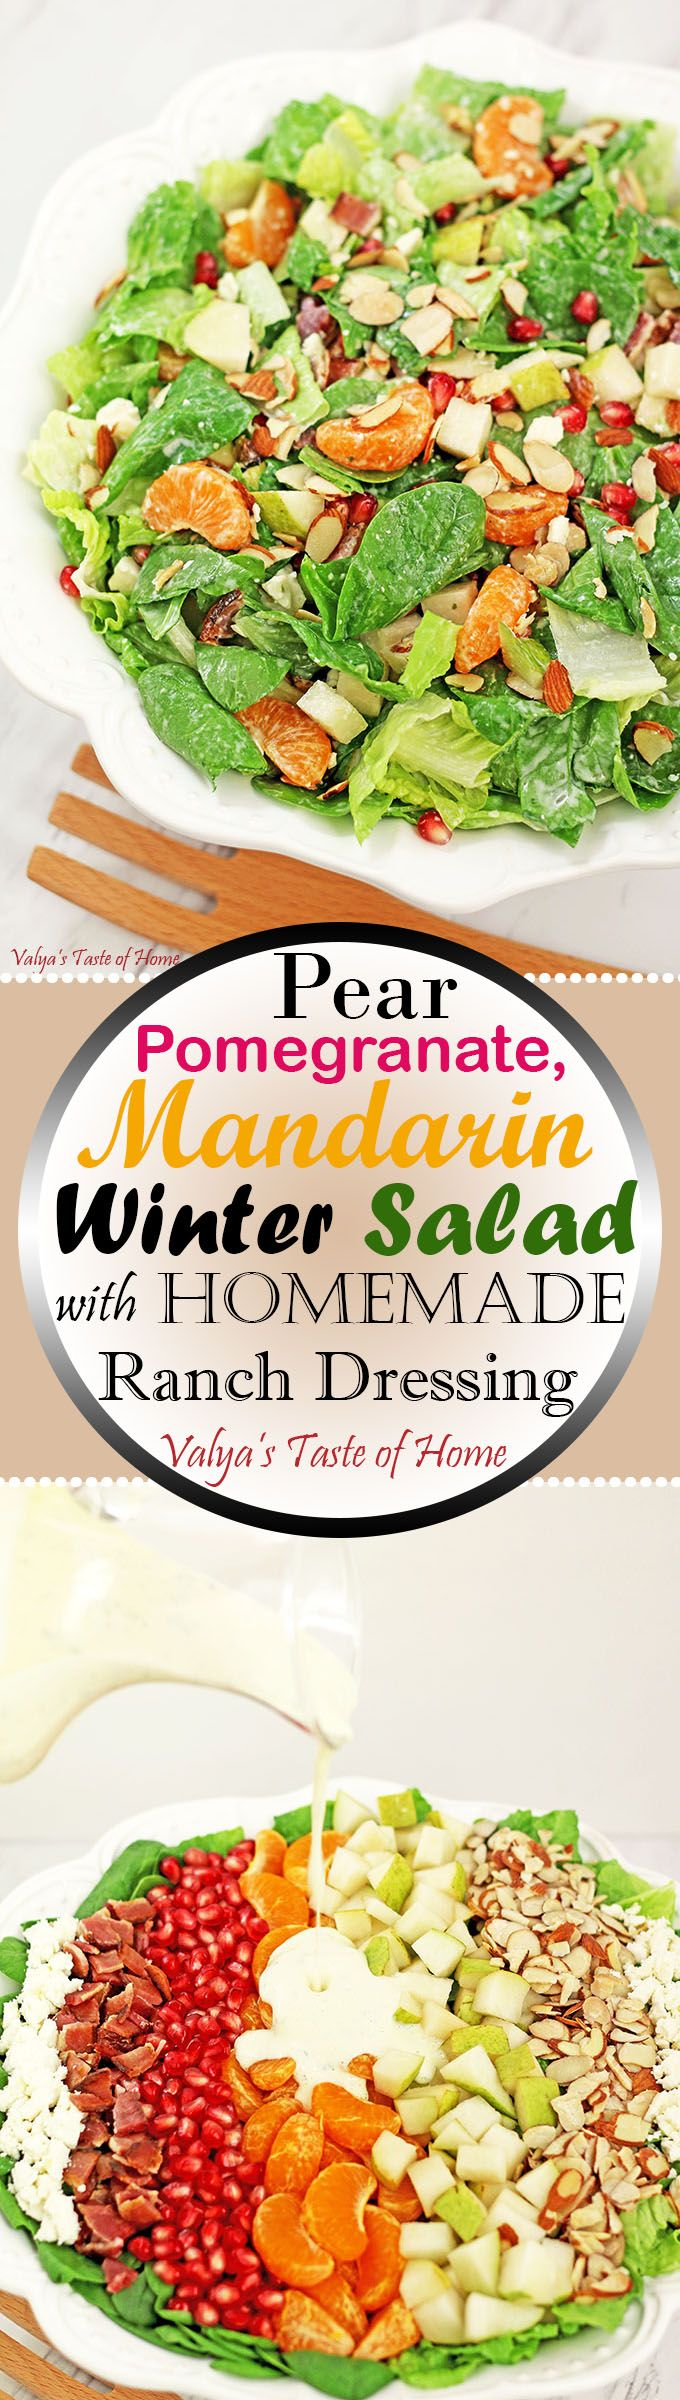 This bright and colorful salad with some winter harvested fruit is so easy to make. It offers not just a beautiful display of diverse colors and flavors on your table but adds variety of choice and nutrition, which tends to decline during the winter season. Bacon, feta and toasted almonds add so many flavors to this salad. All of the ingredients meld together really well.